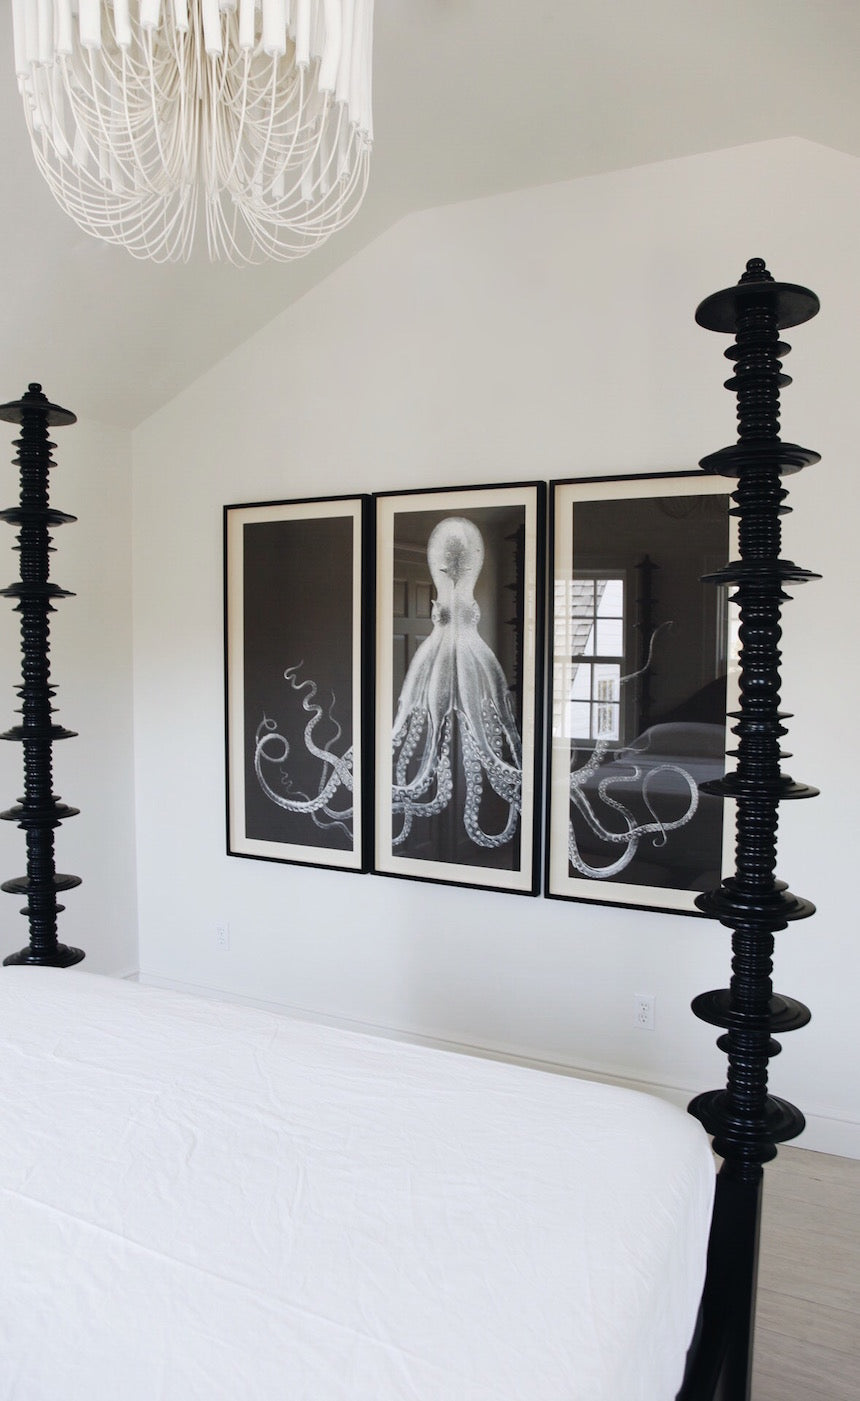 guest room octopus artwork